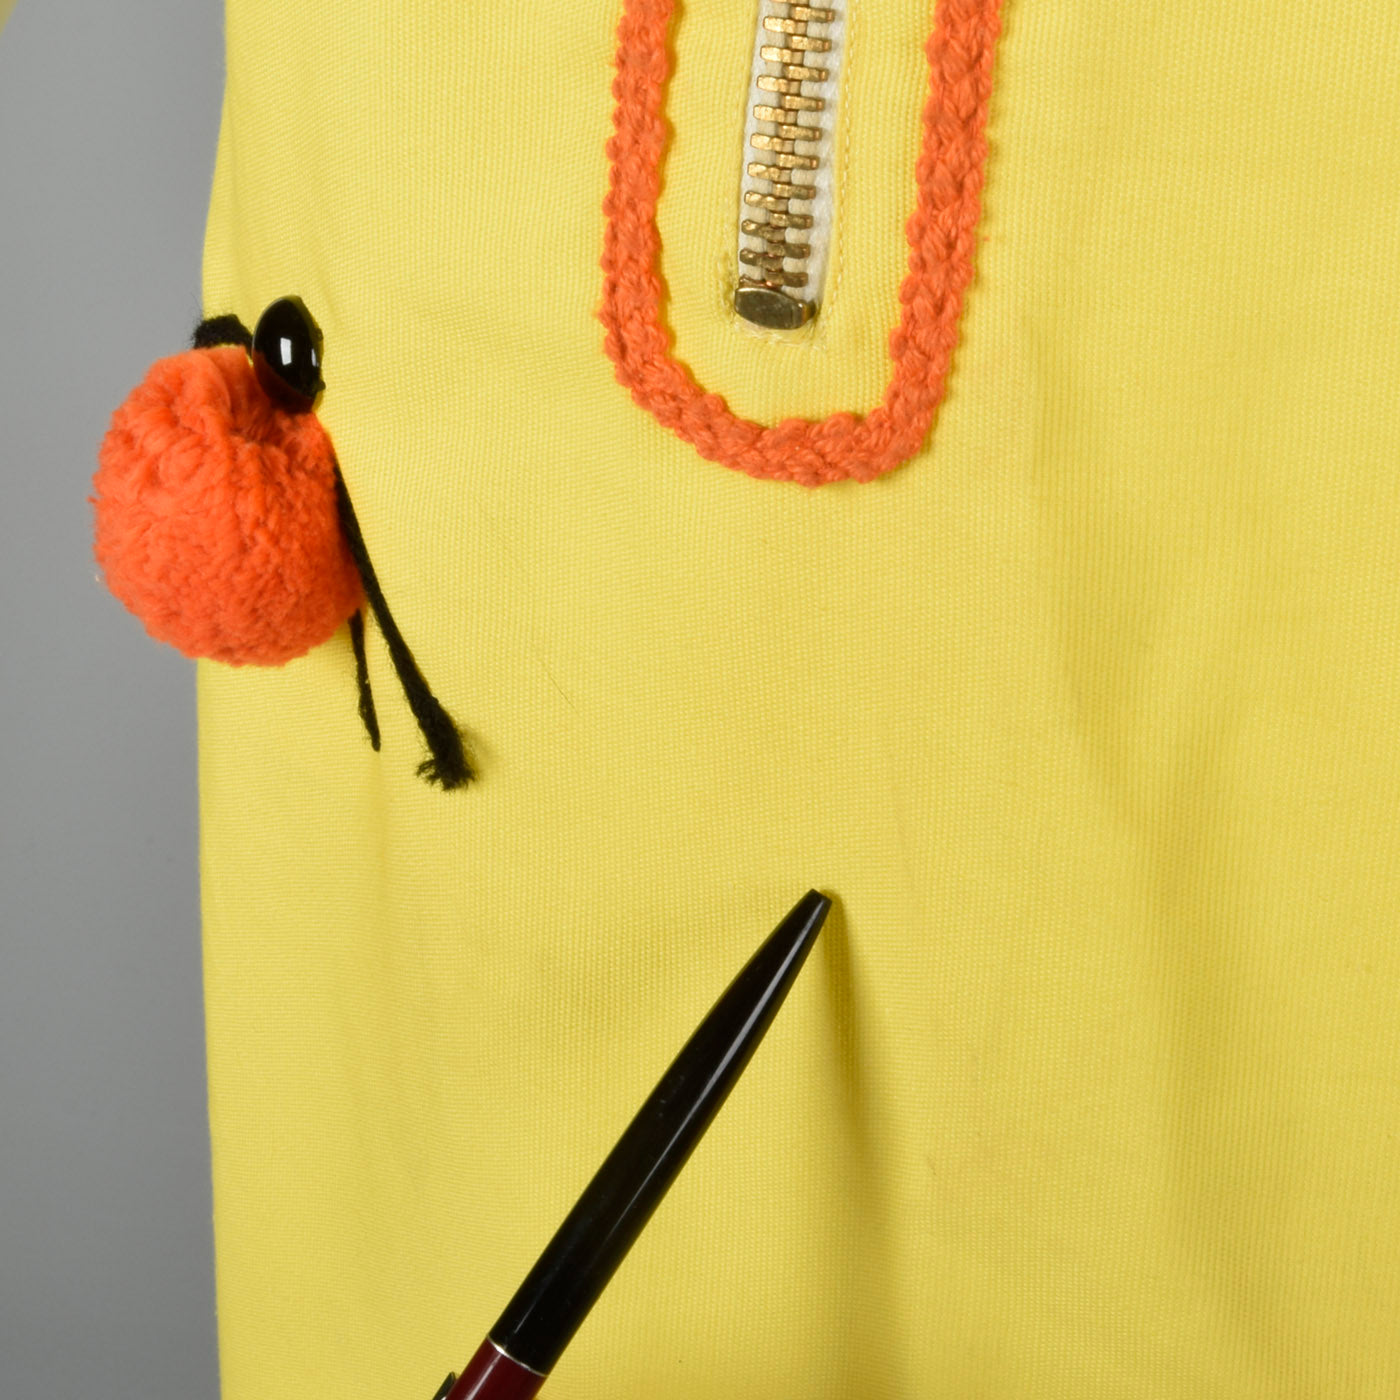 1960s Zip Front Dress with Pom Pom Ladybugs